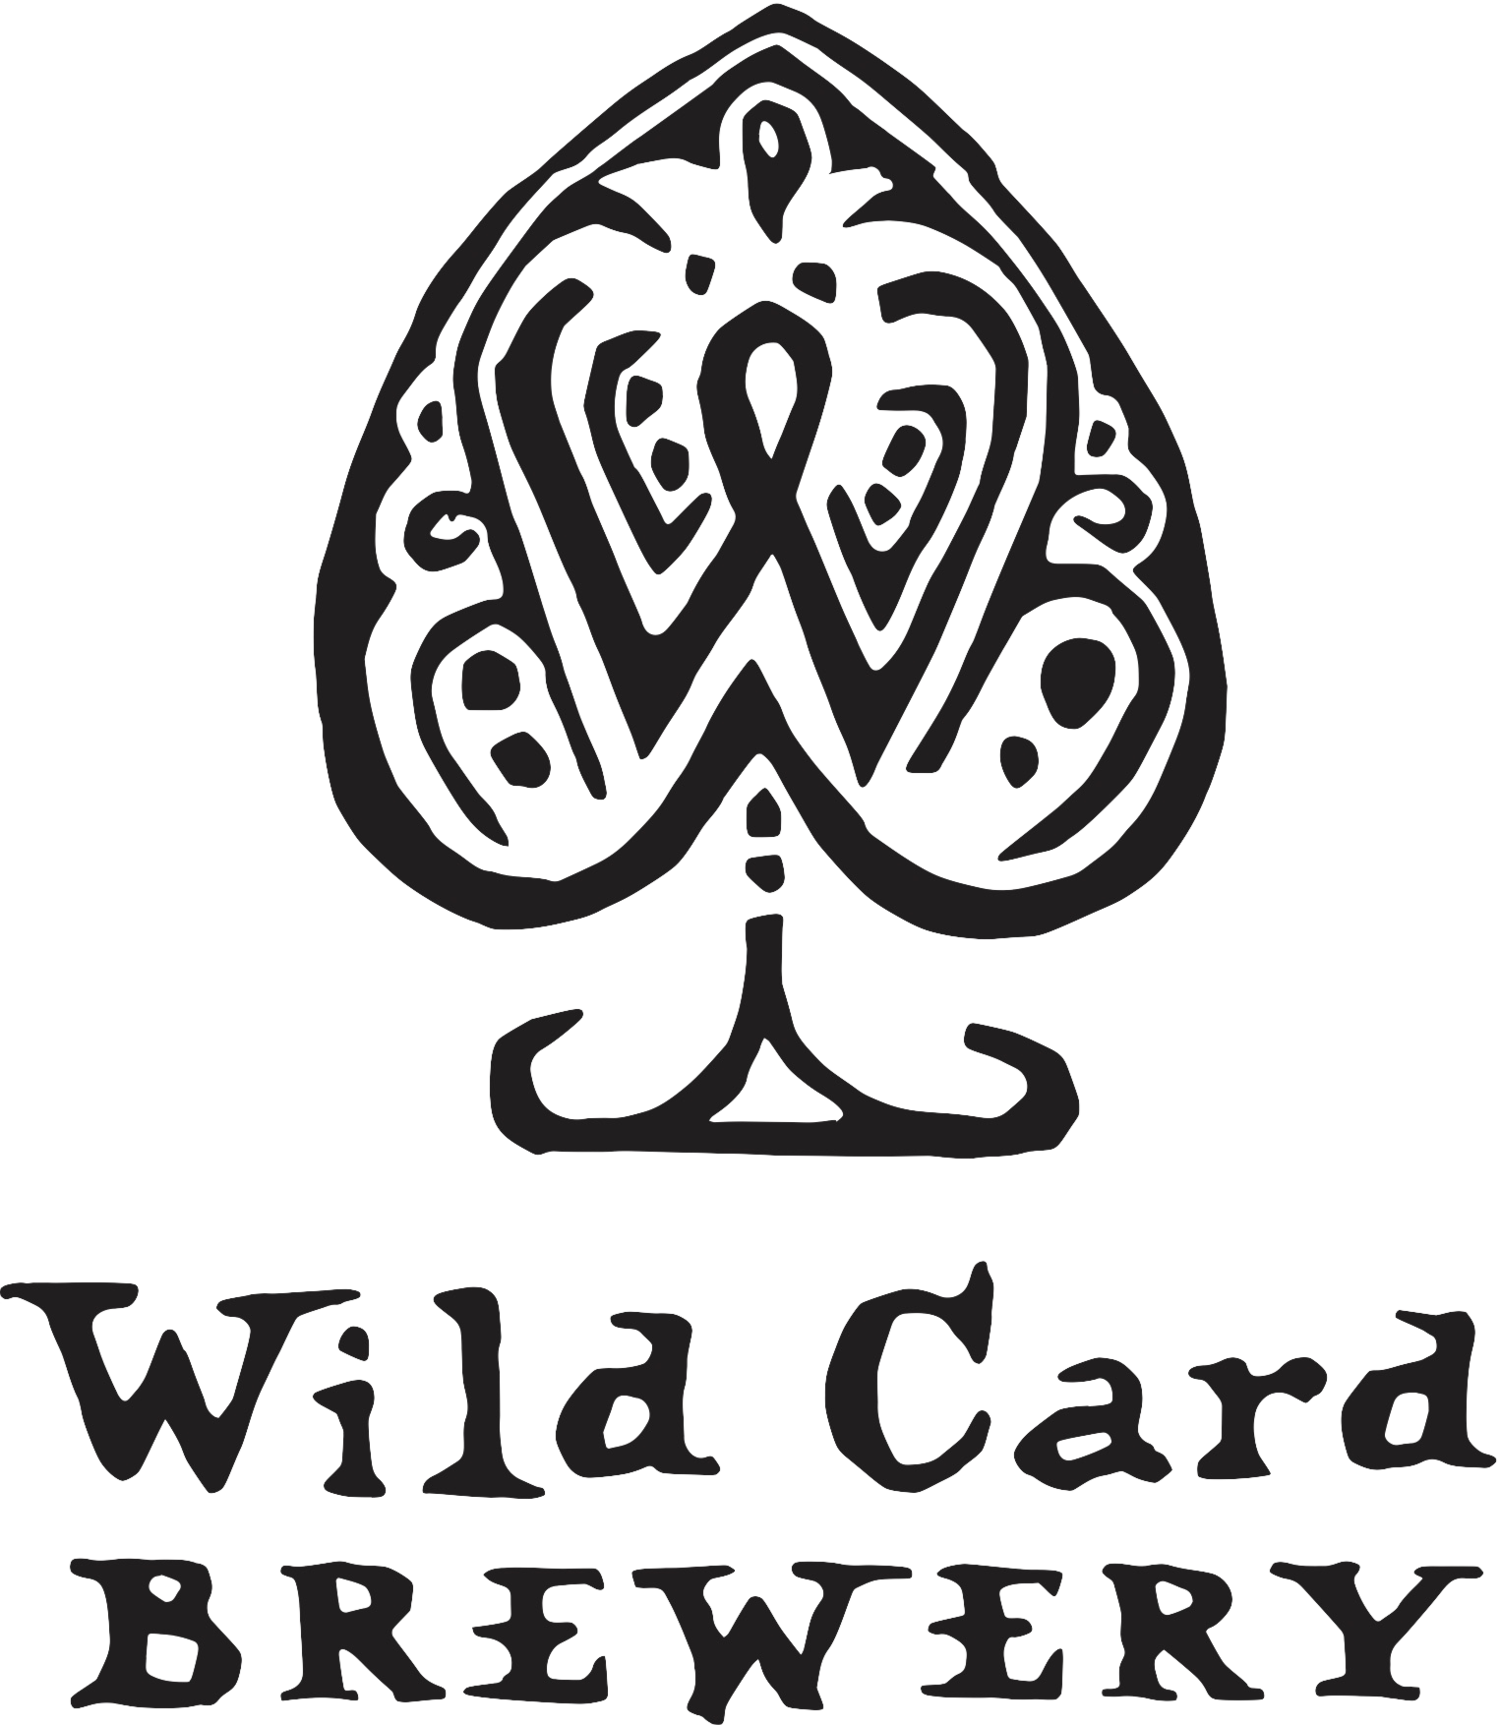 Wild Card Brewery